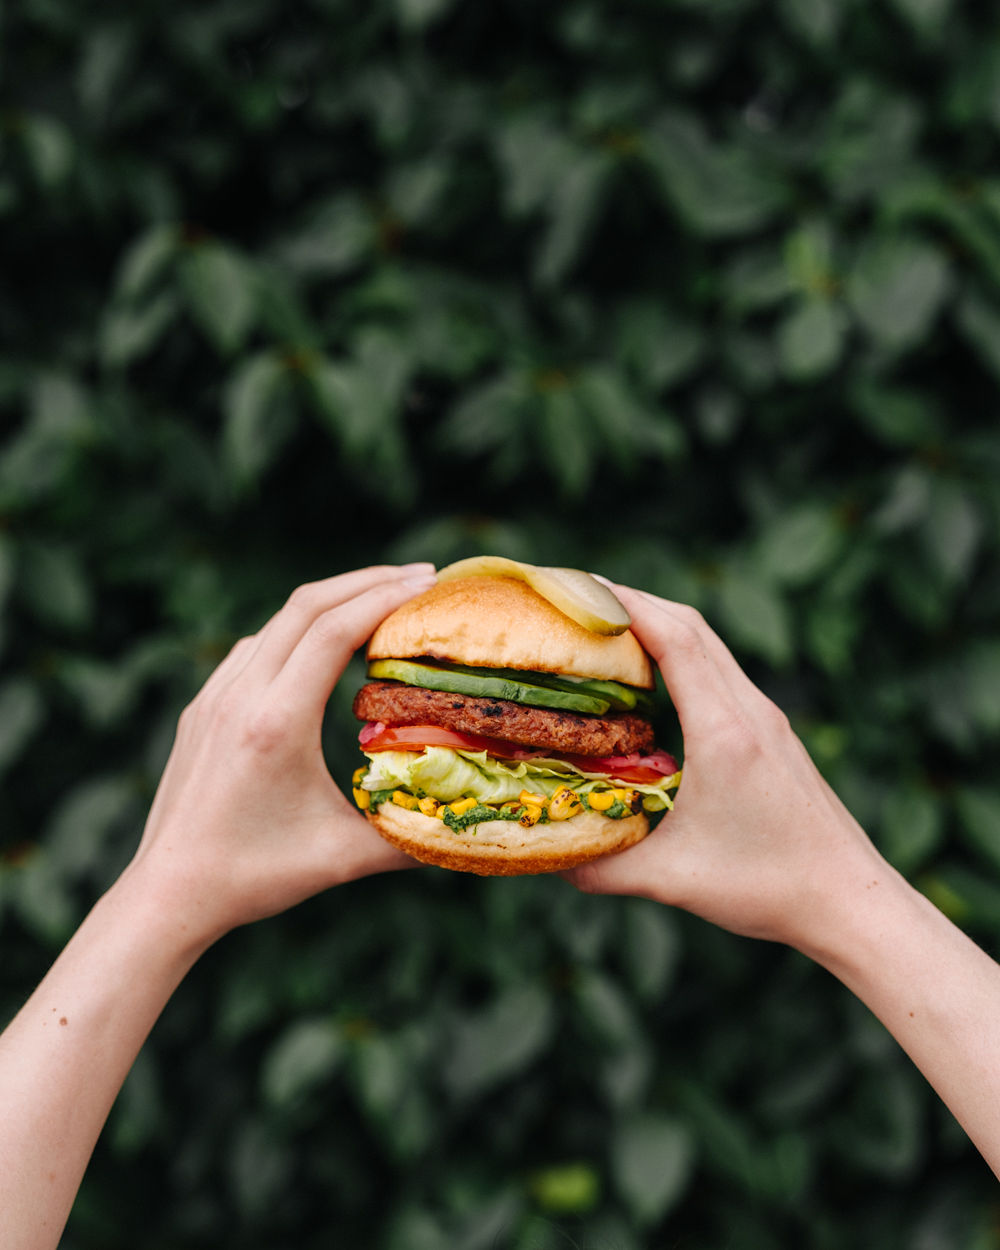 WHITE SPOT is GIVing AWAY 300 FREE AVOCADO BEYOND BUGERS™ - April 15, 2019Beloved BC restaurant chain White Spot is inviting Vancouver burger lovers to join them in celebrating the addition of the 100%-plant-based Beyond Burger® patty to its menu by giving away 300 FREE Avocado Beyond Burgers™ (limit one per person) from its food truck parked at the EasyPark parking lot at the corner of Cambie and West Georgia (688 Cambie Street) starting at 11 a.m. today.Available at all full-service White Spot restaurants in BC and Alberta beginning Monday, April 15, White Spot's Avocado Beyond Burger features a hearty four-ounce chargrilled Beyond Burger patty, fresh avocado, pickled onions, roasted corn, crisp lettuce, vine-ripened tomatoes, jalapeño ranch and edamame hummus.